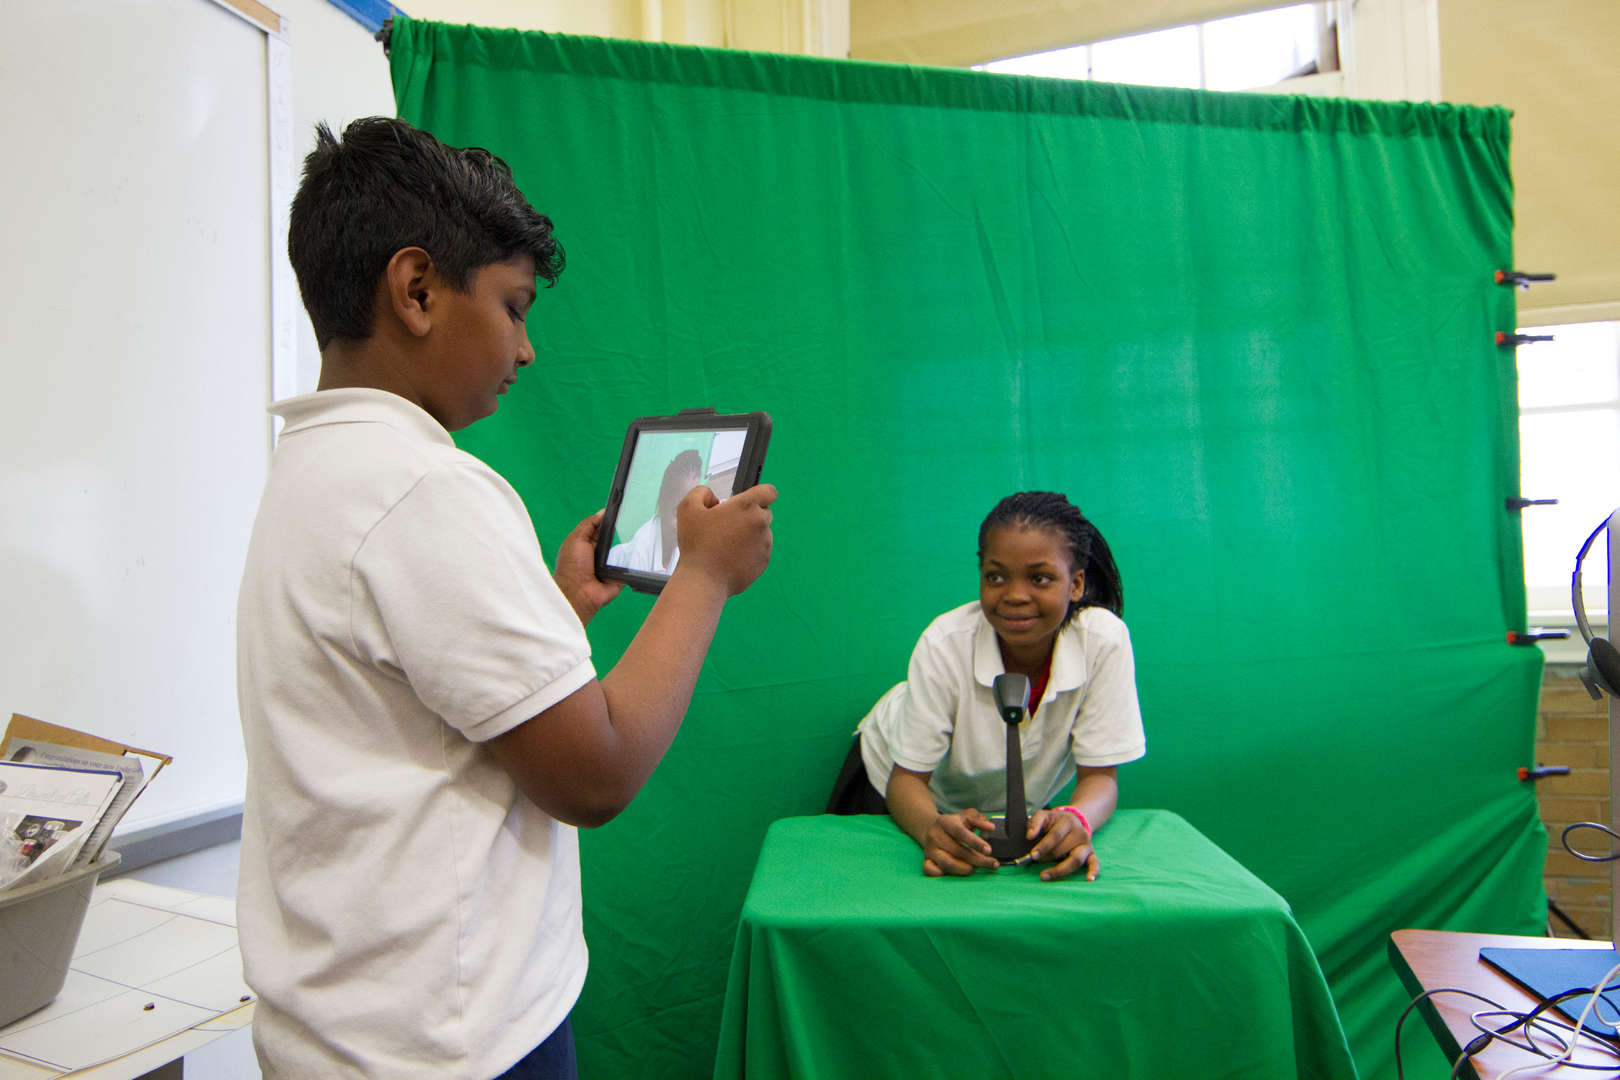 Kids creating video using green screen